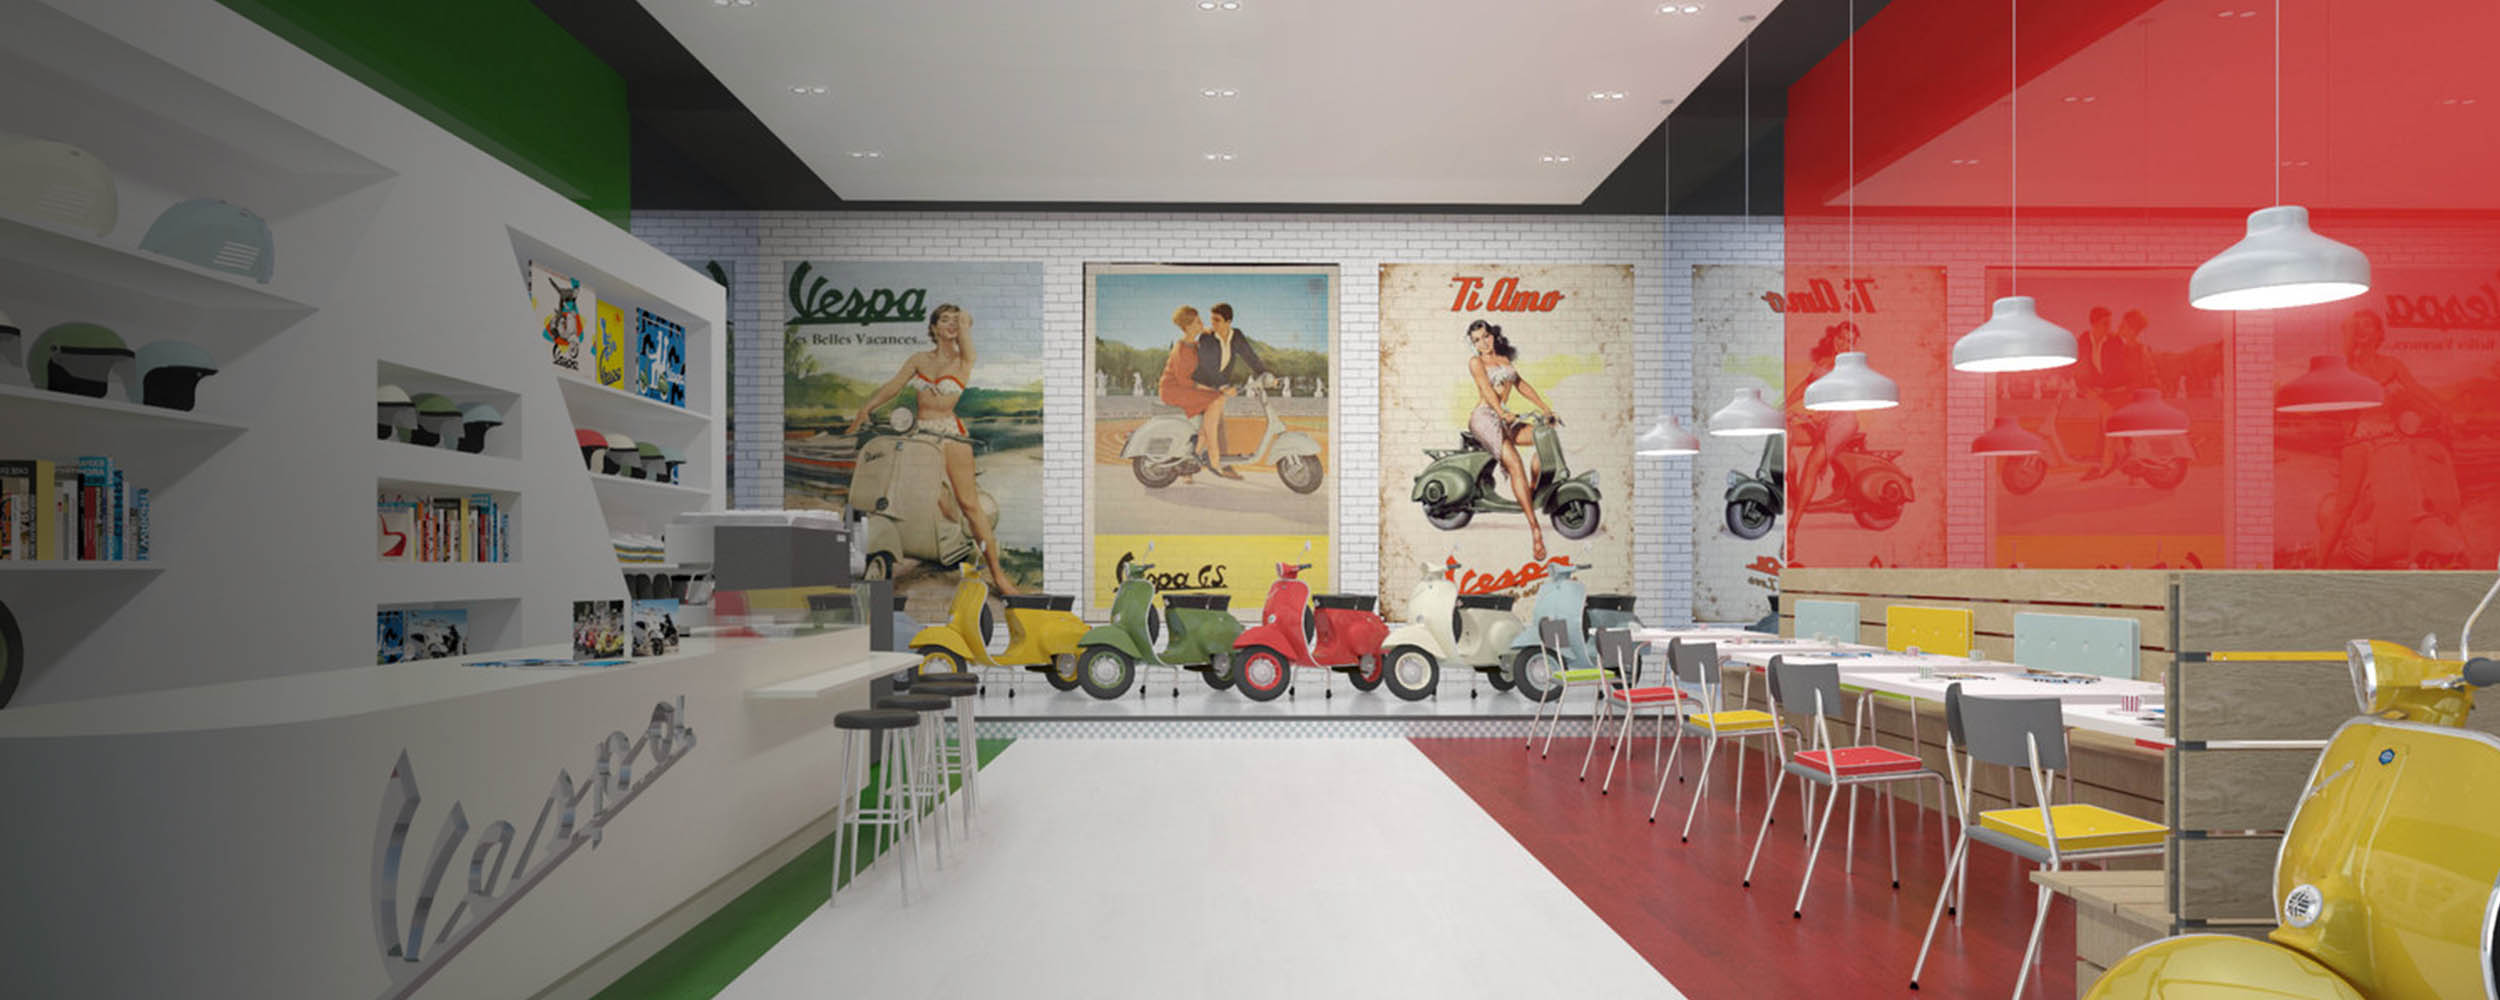 Scooter Showroom, London